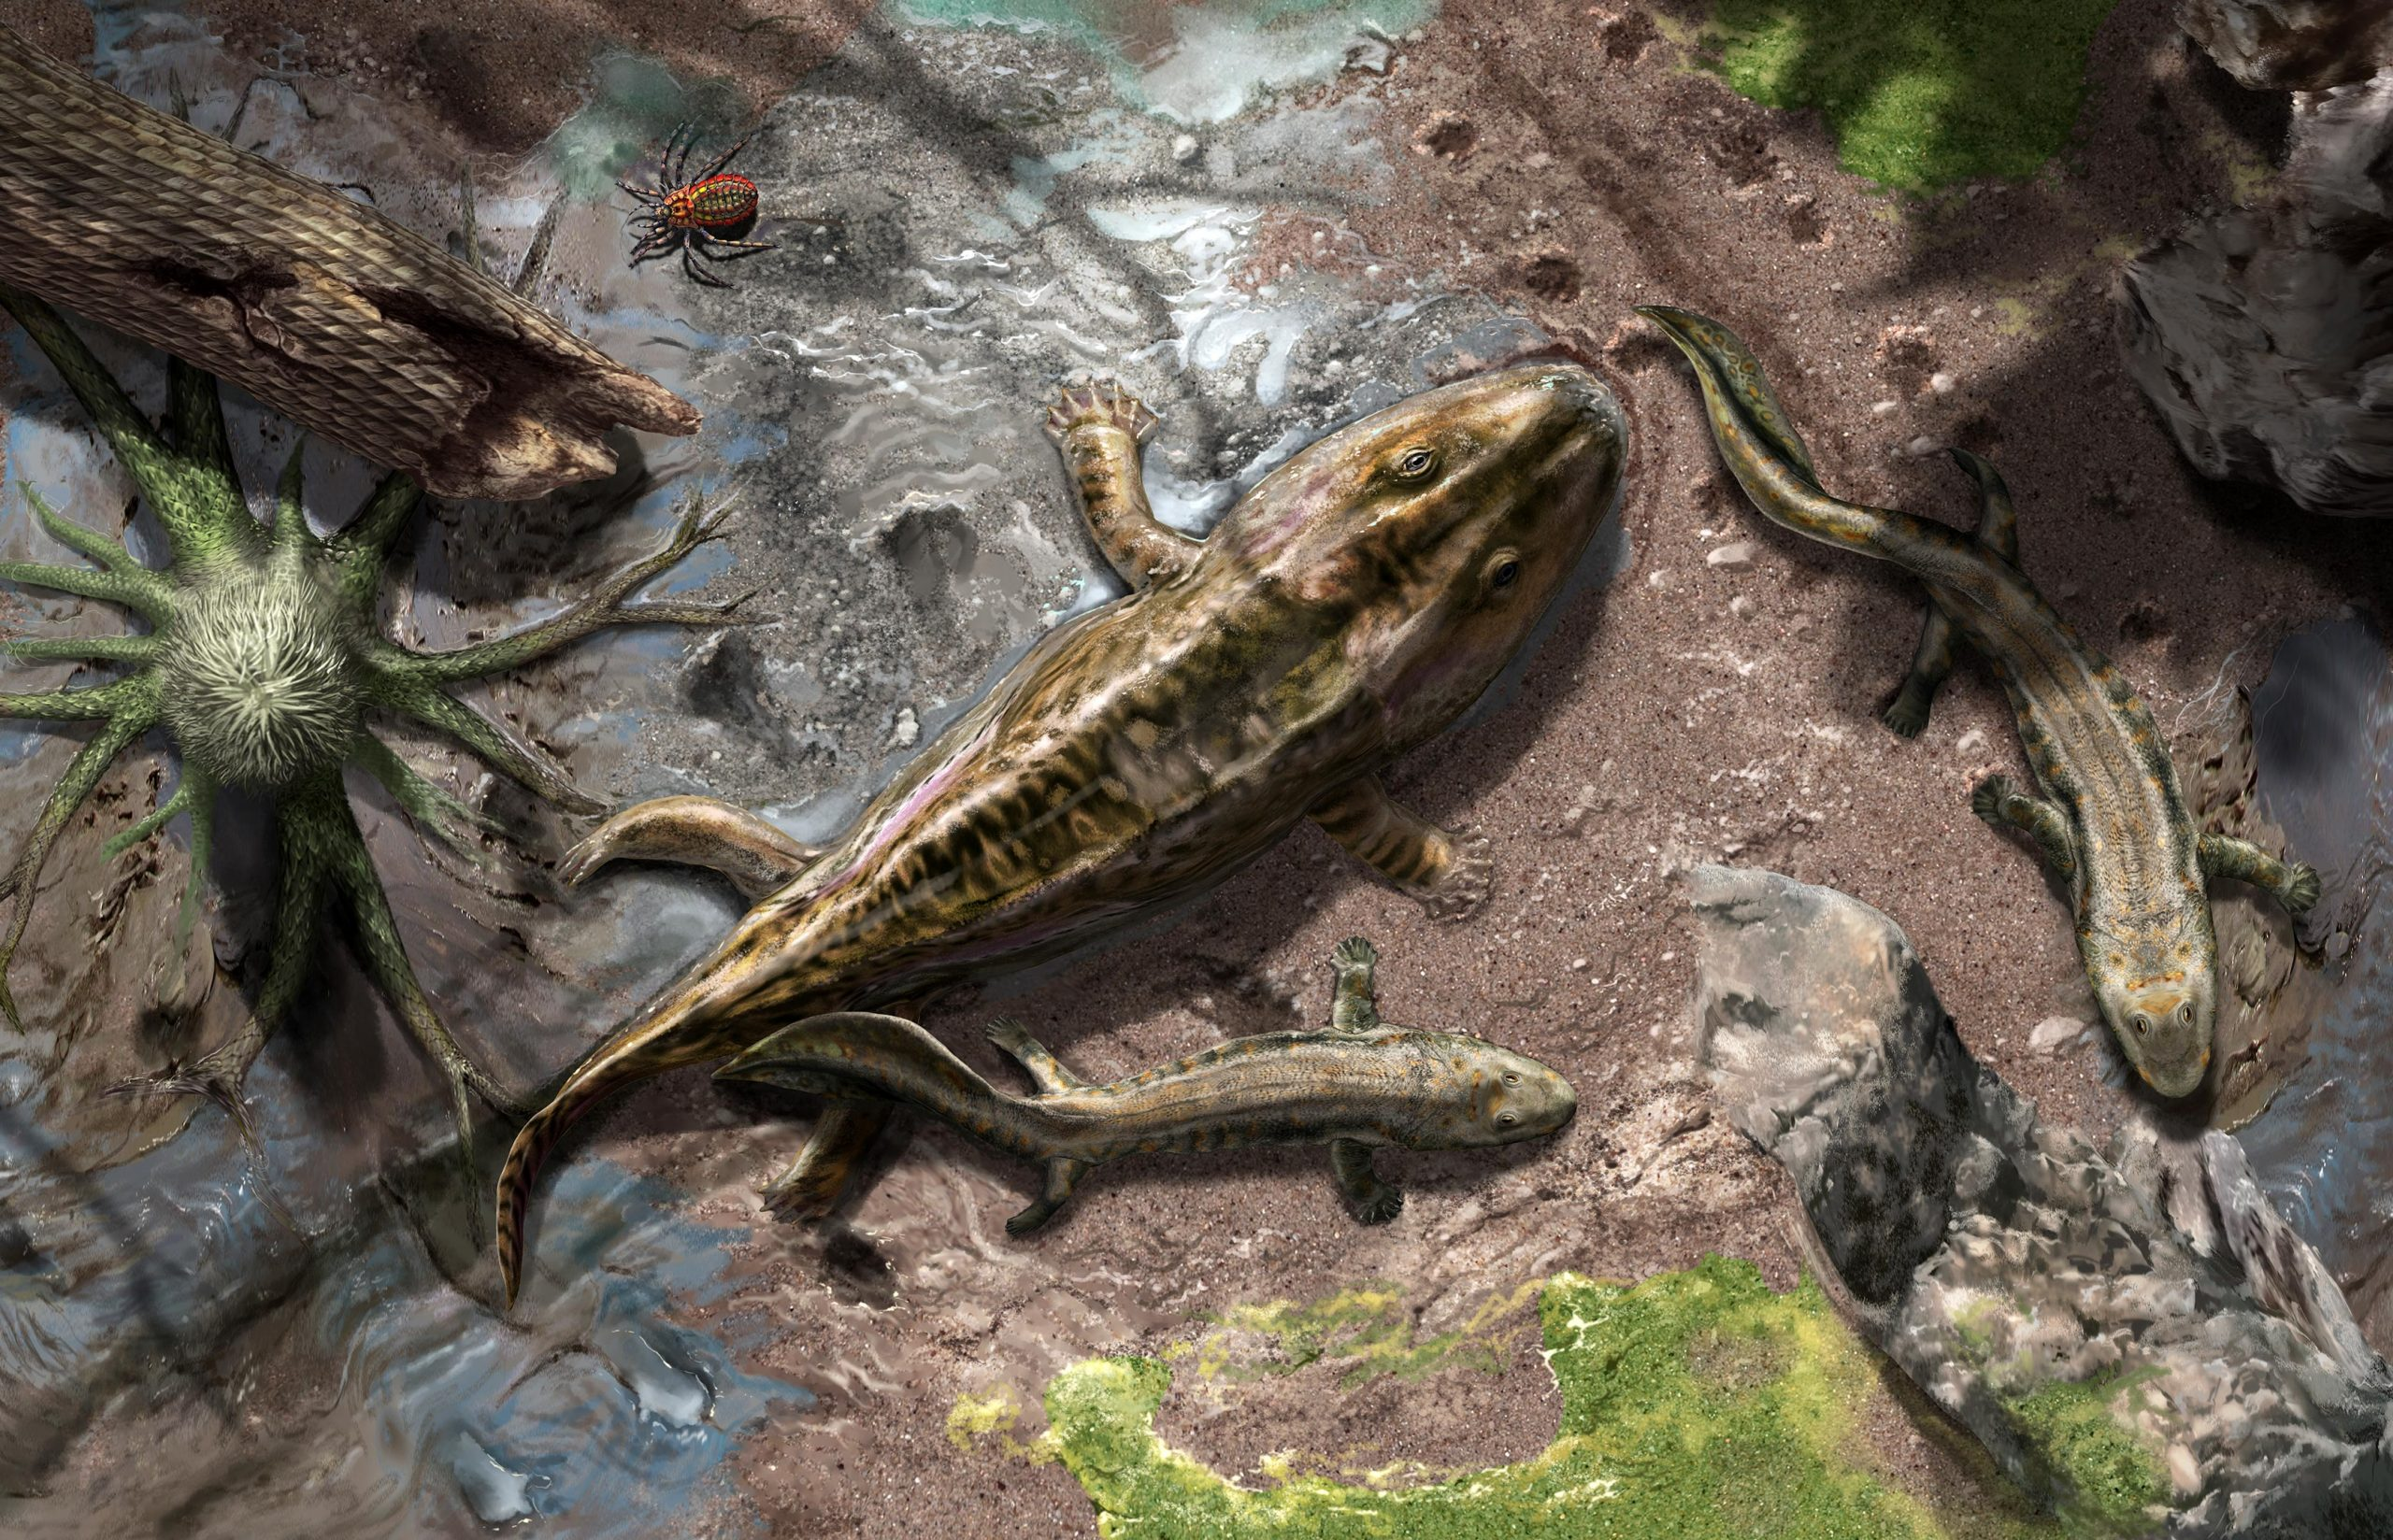 From Fins to Limbs and Water to Land: Evolution of Terrestrial Movement in Early Tetrapods - SciTechDaily